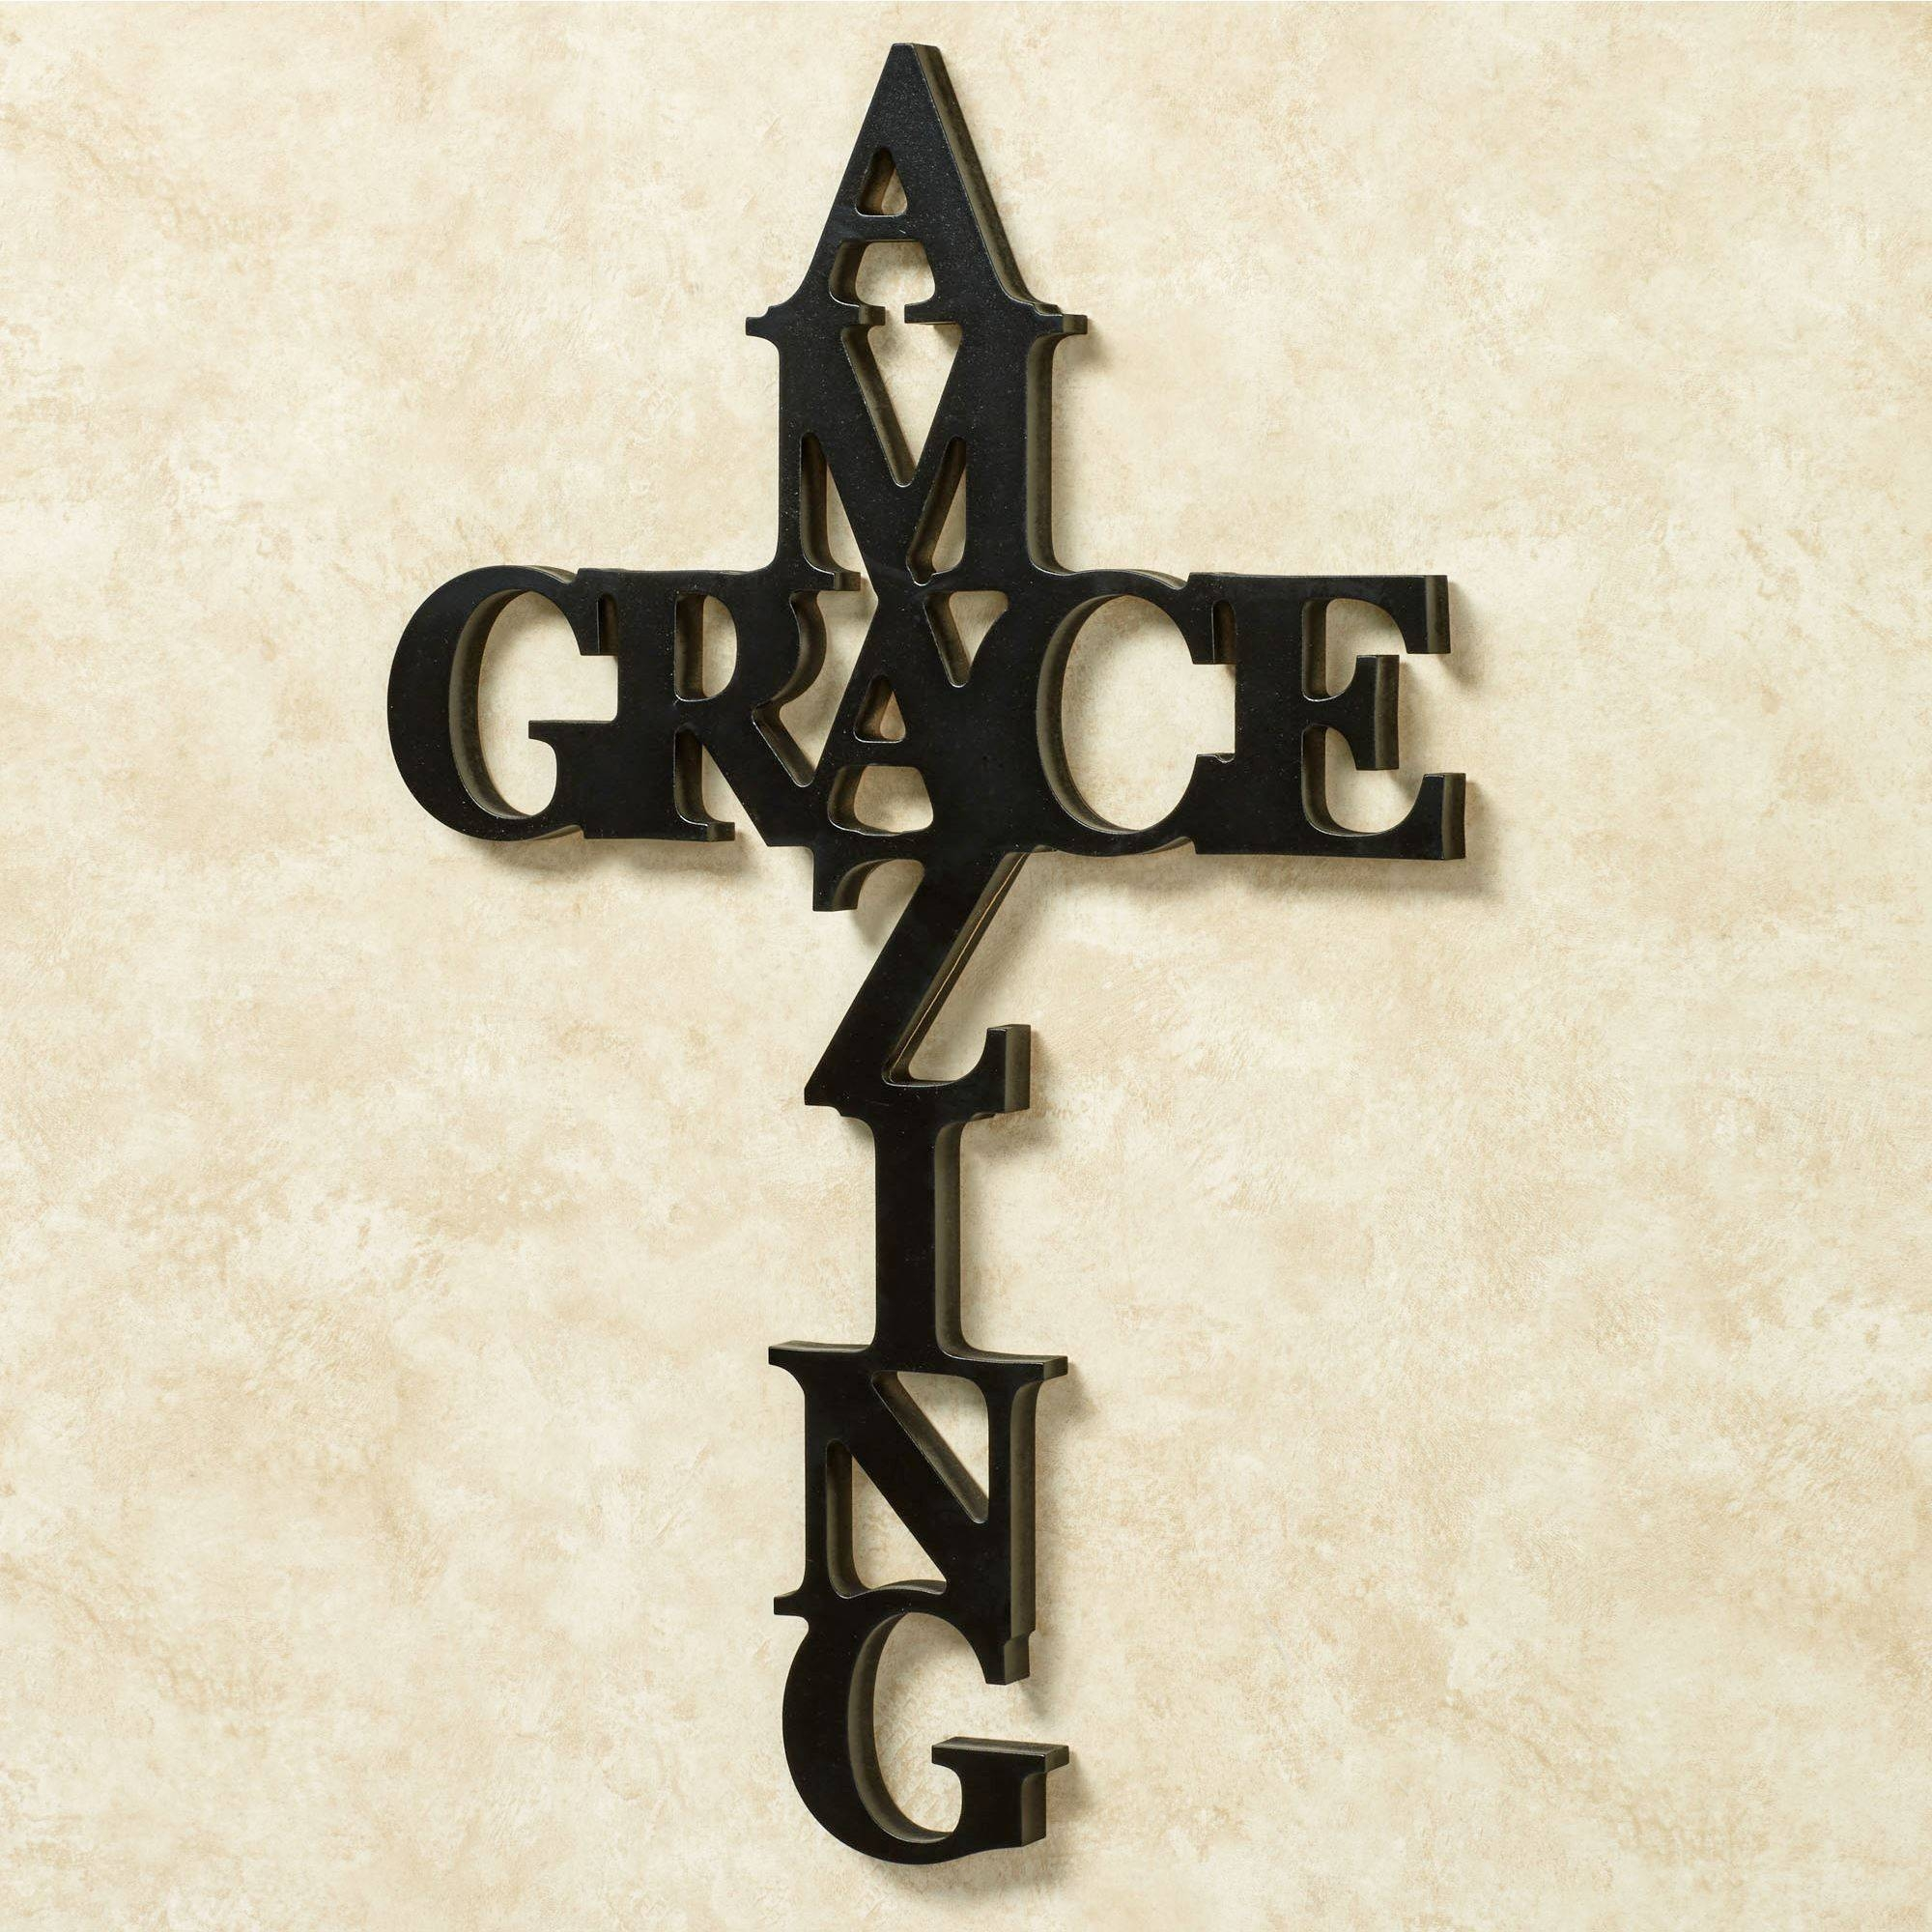 Amazing Grace Word Cross Wall Art Intended For Latest Grace Wall Art (Gallery 8 of 25)